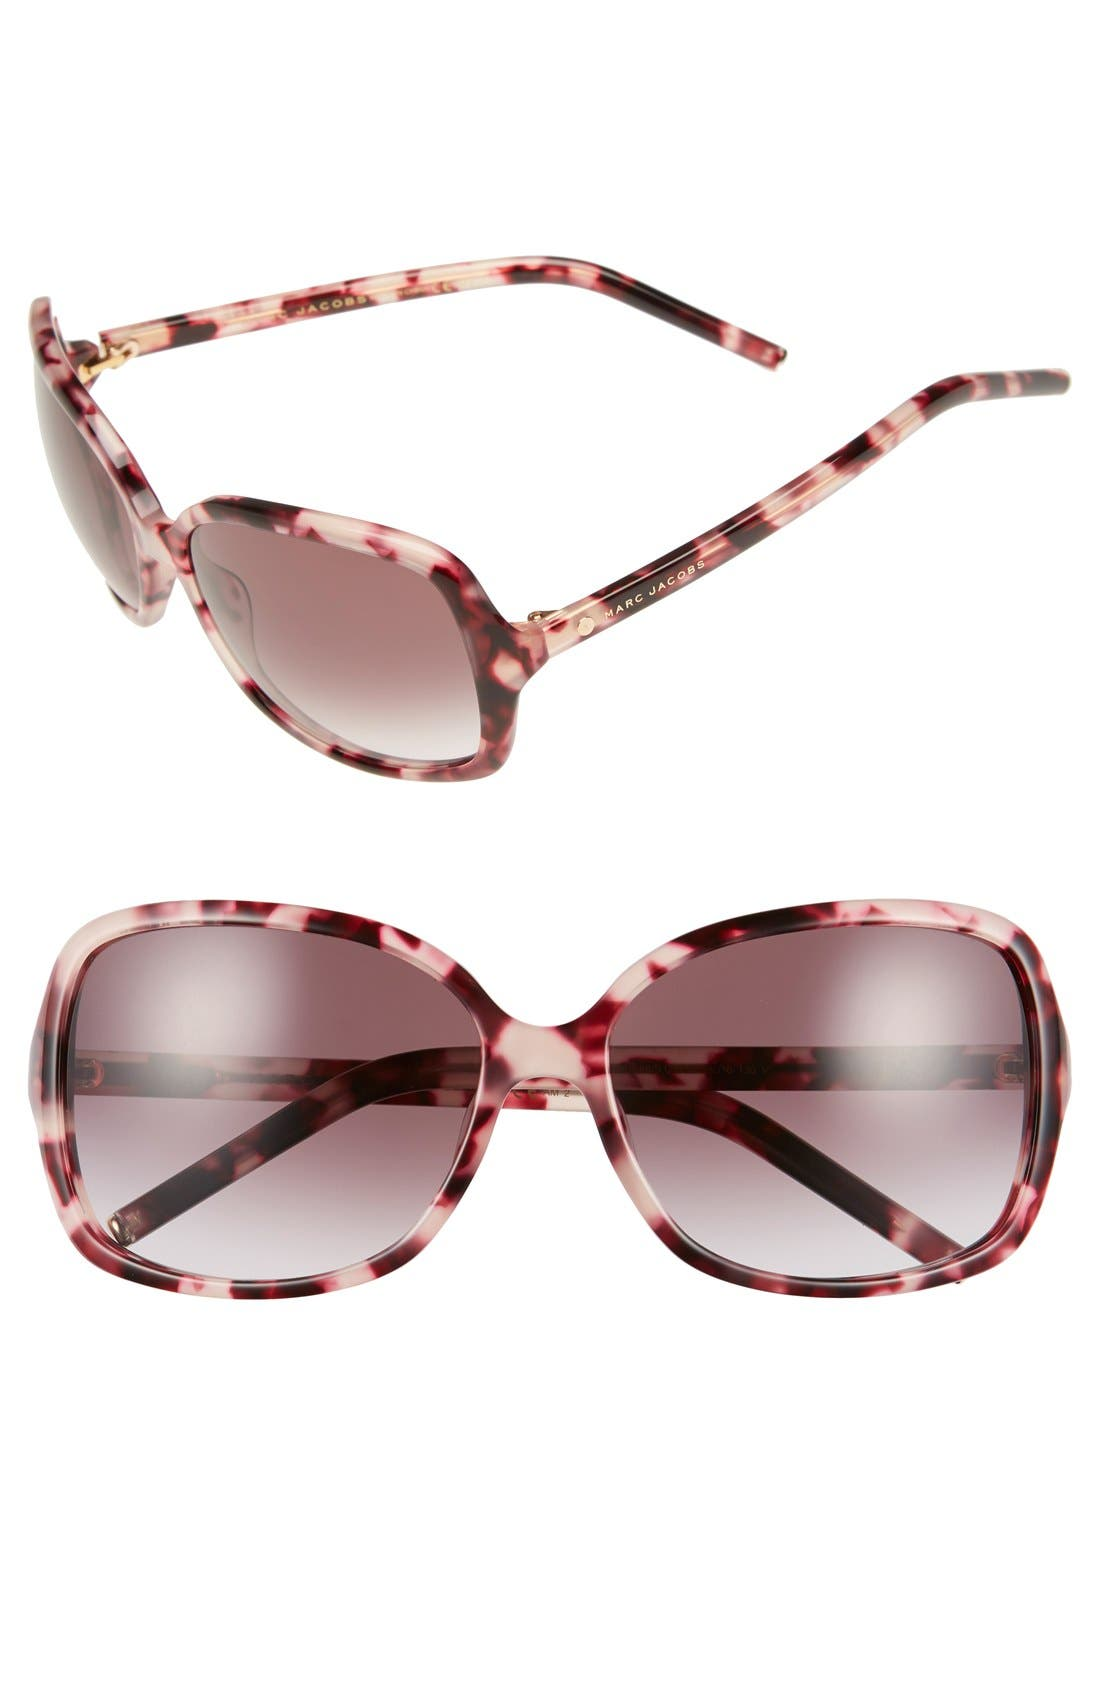 MARC JACOBS 59mm Oversized Sunglasses